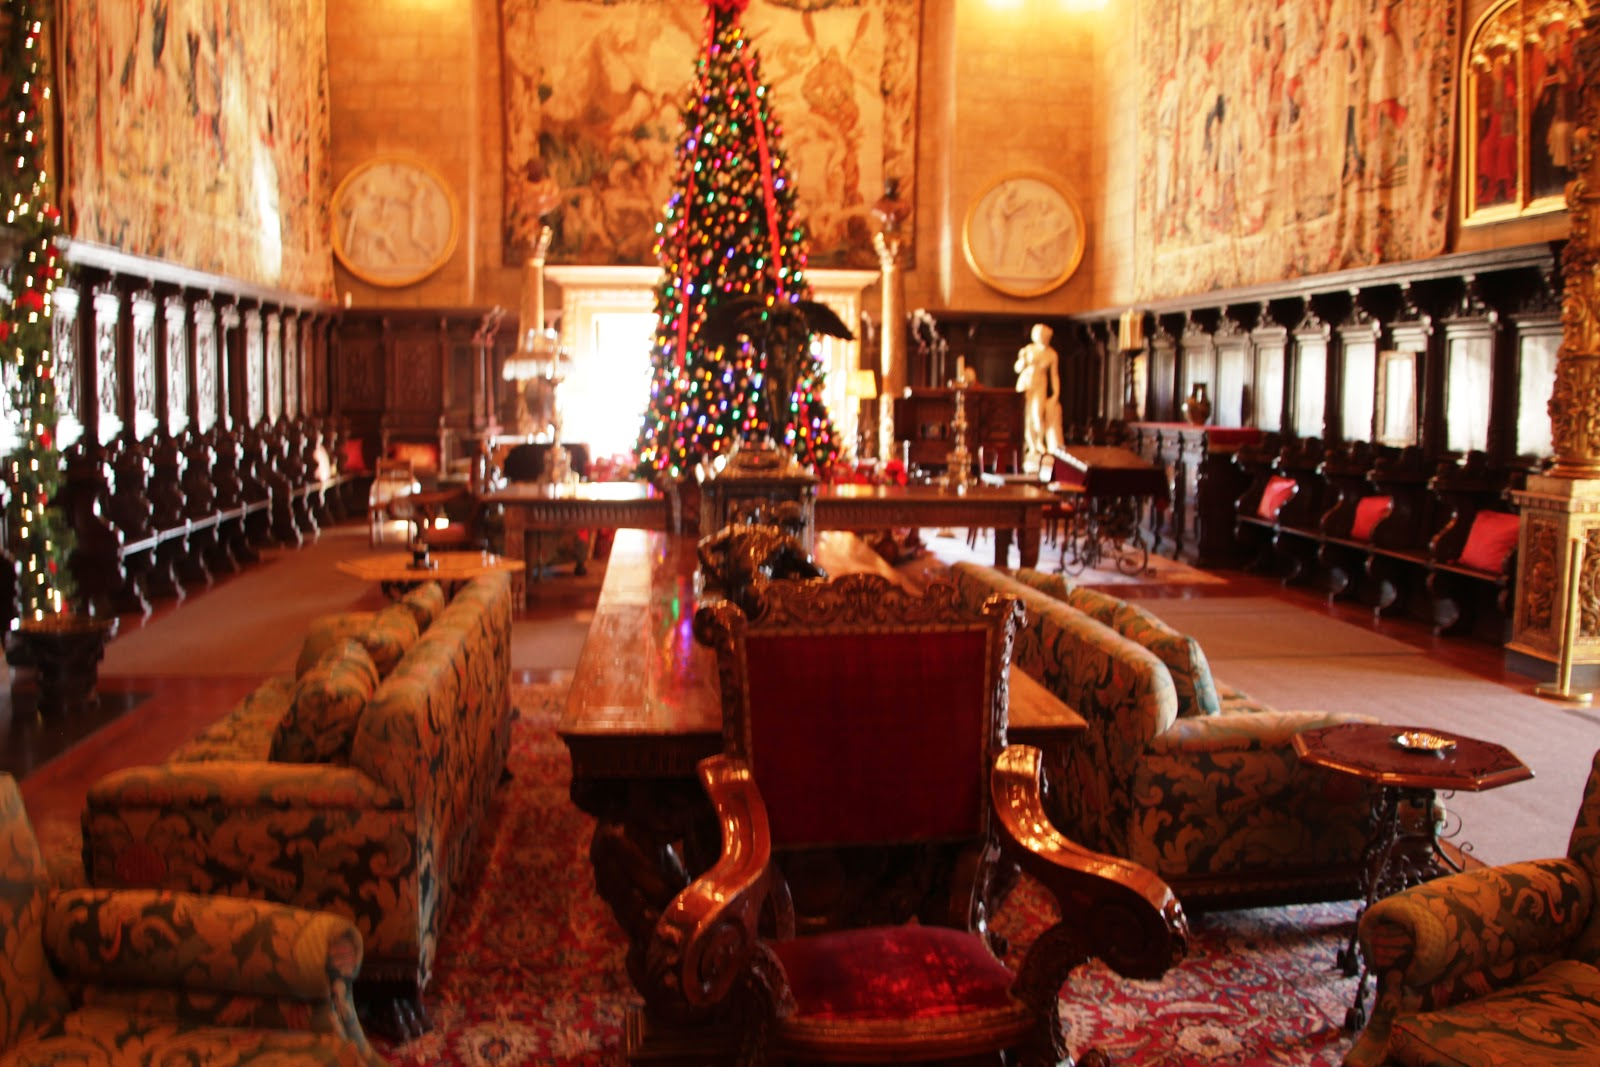 The dining room resembled a scene from the Harry Potter movie with its  title=